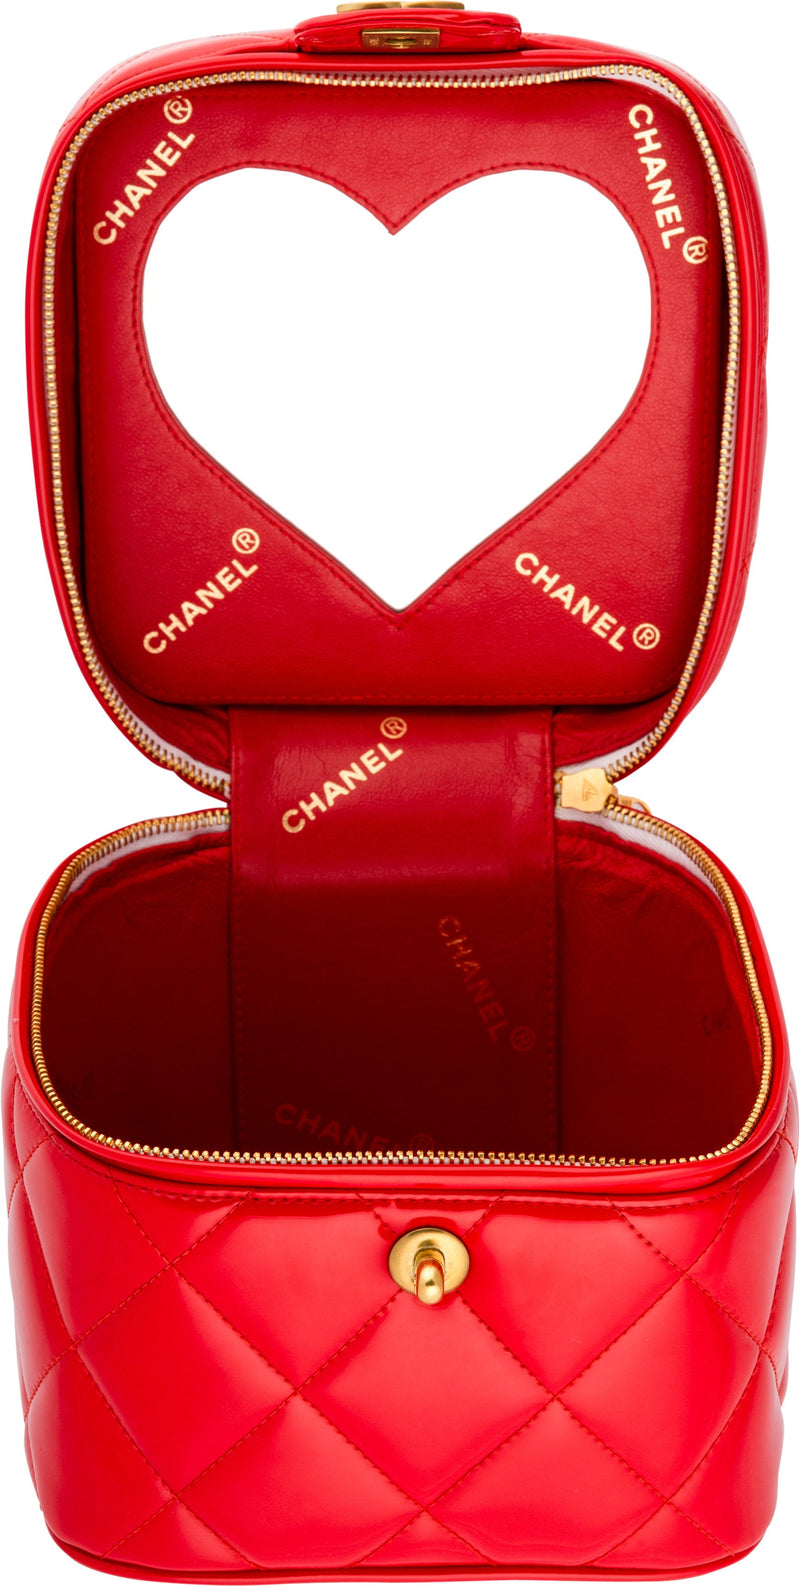 Chanel Spring 1995 Heart Mirror Vanity Campaign Bag